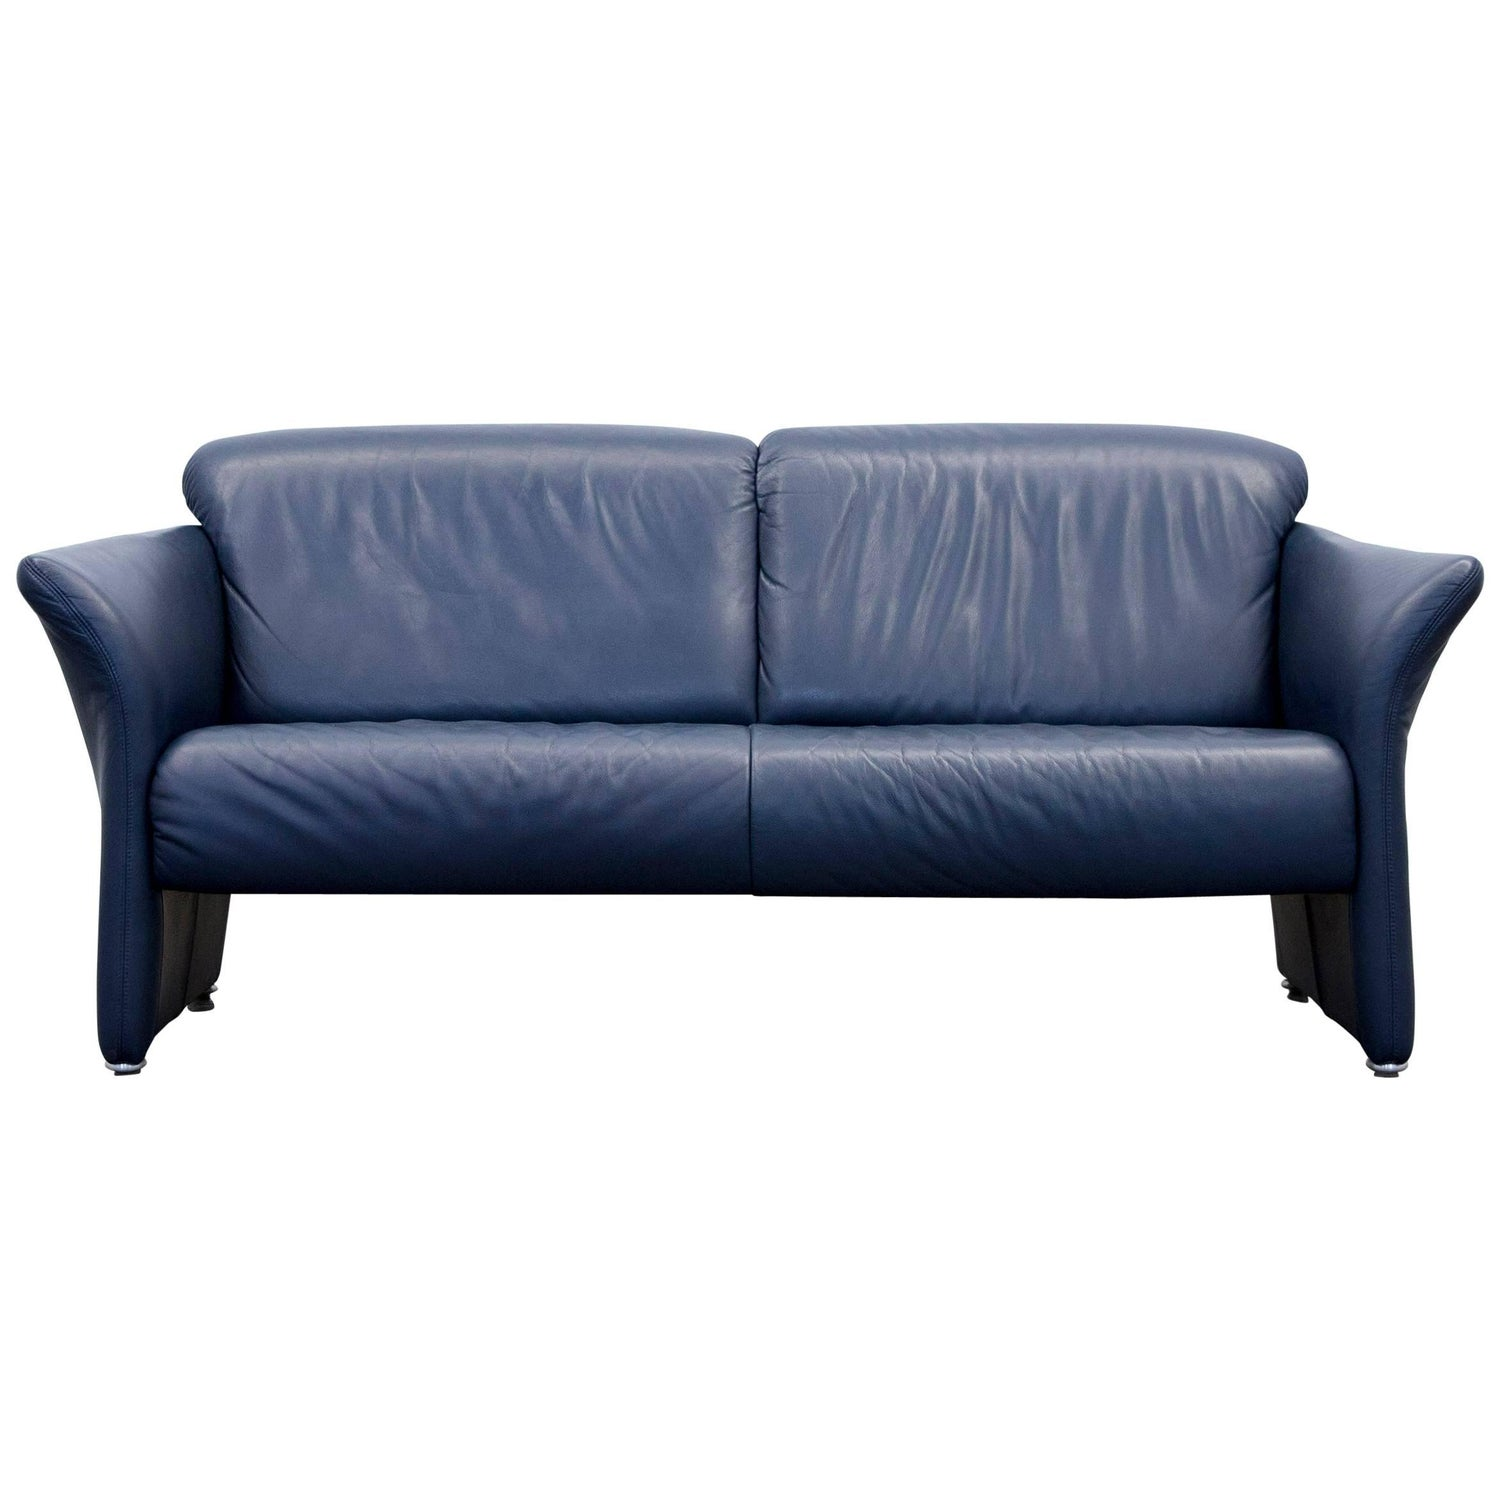 Koinor Designer Sofa Set Leather Dark Blue Two Seat Chair Couch